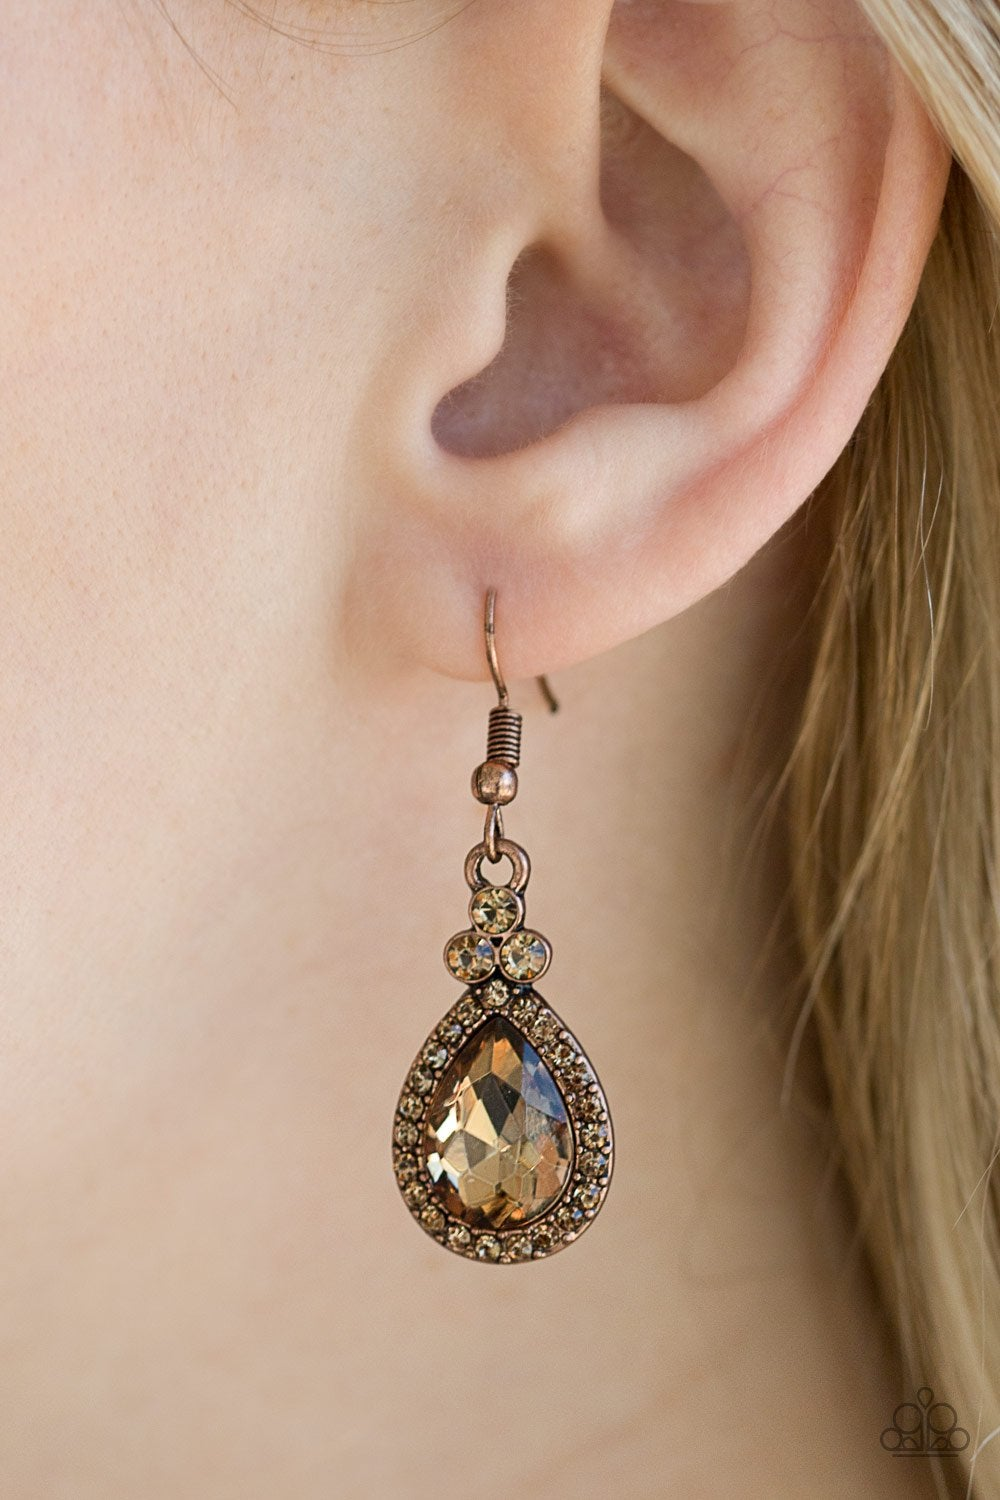 A glittery topaz teardrop gem is pressed into a topaz rhinestone encrusted frame, creating a timeless lure. Earring attaches to a standard fishhook fitting.